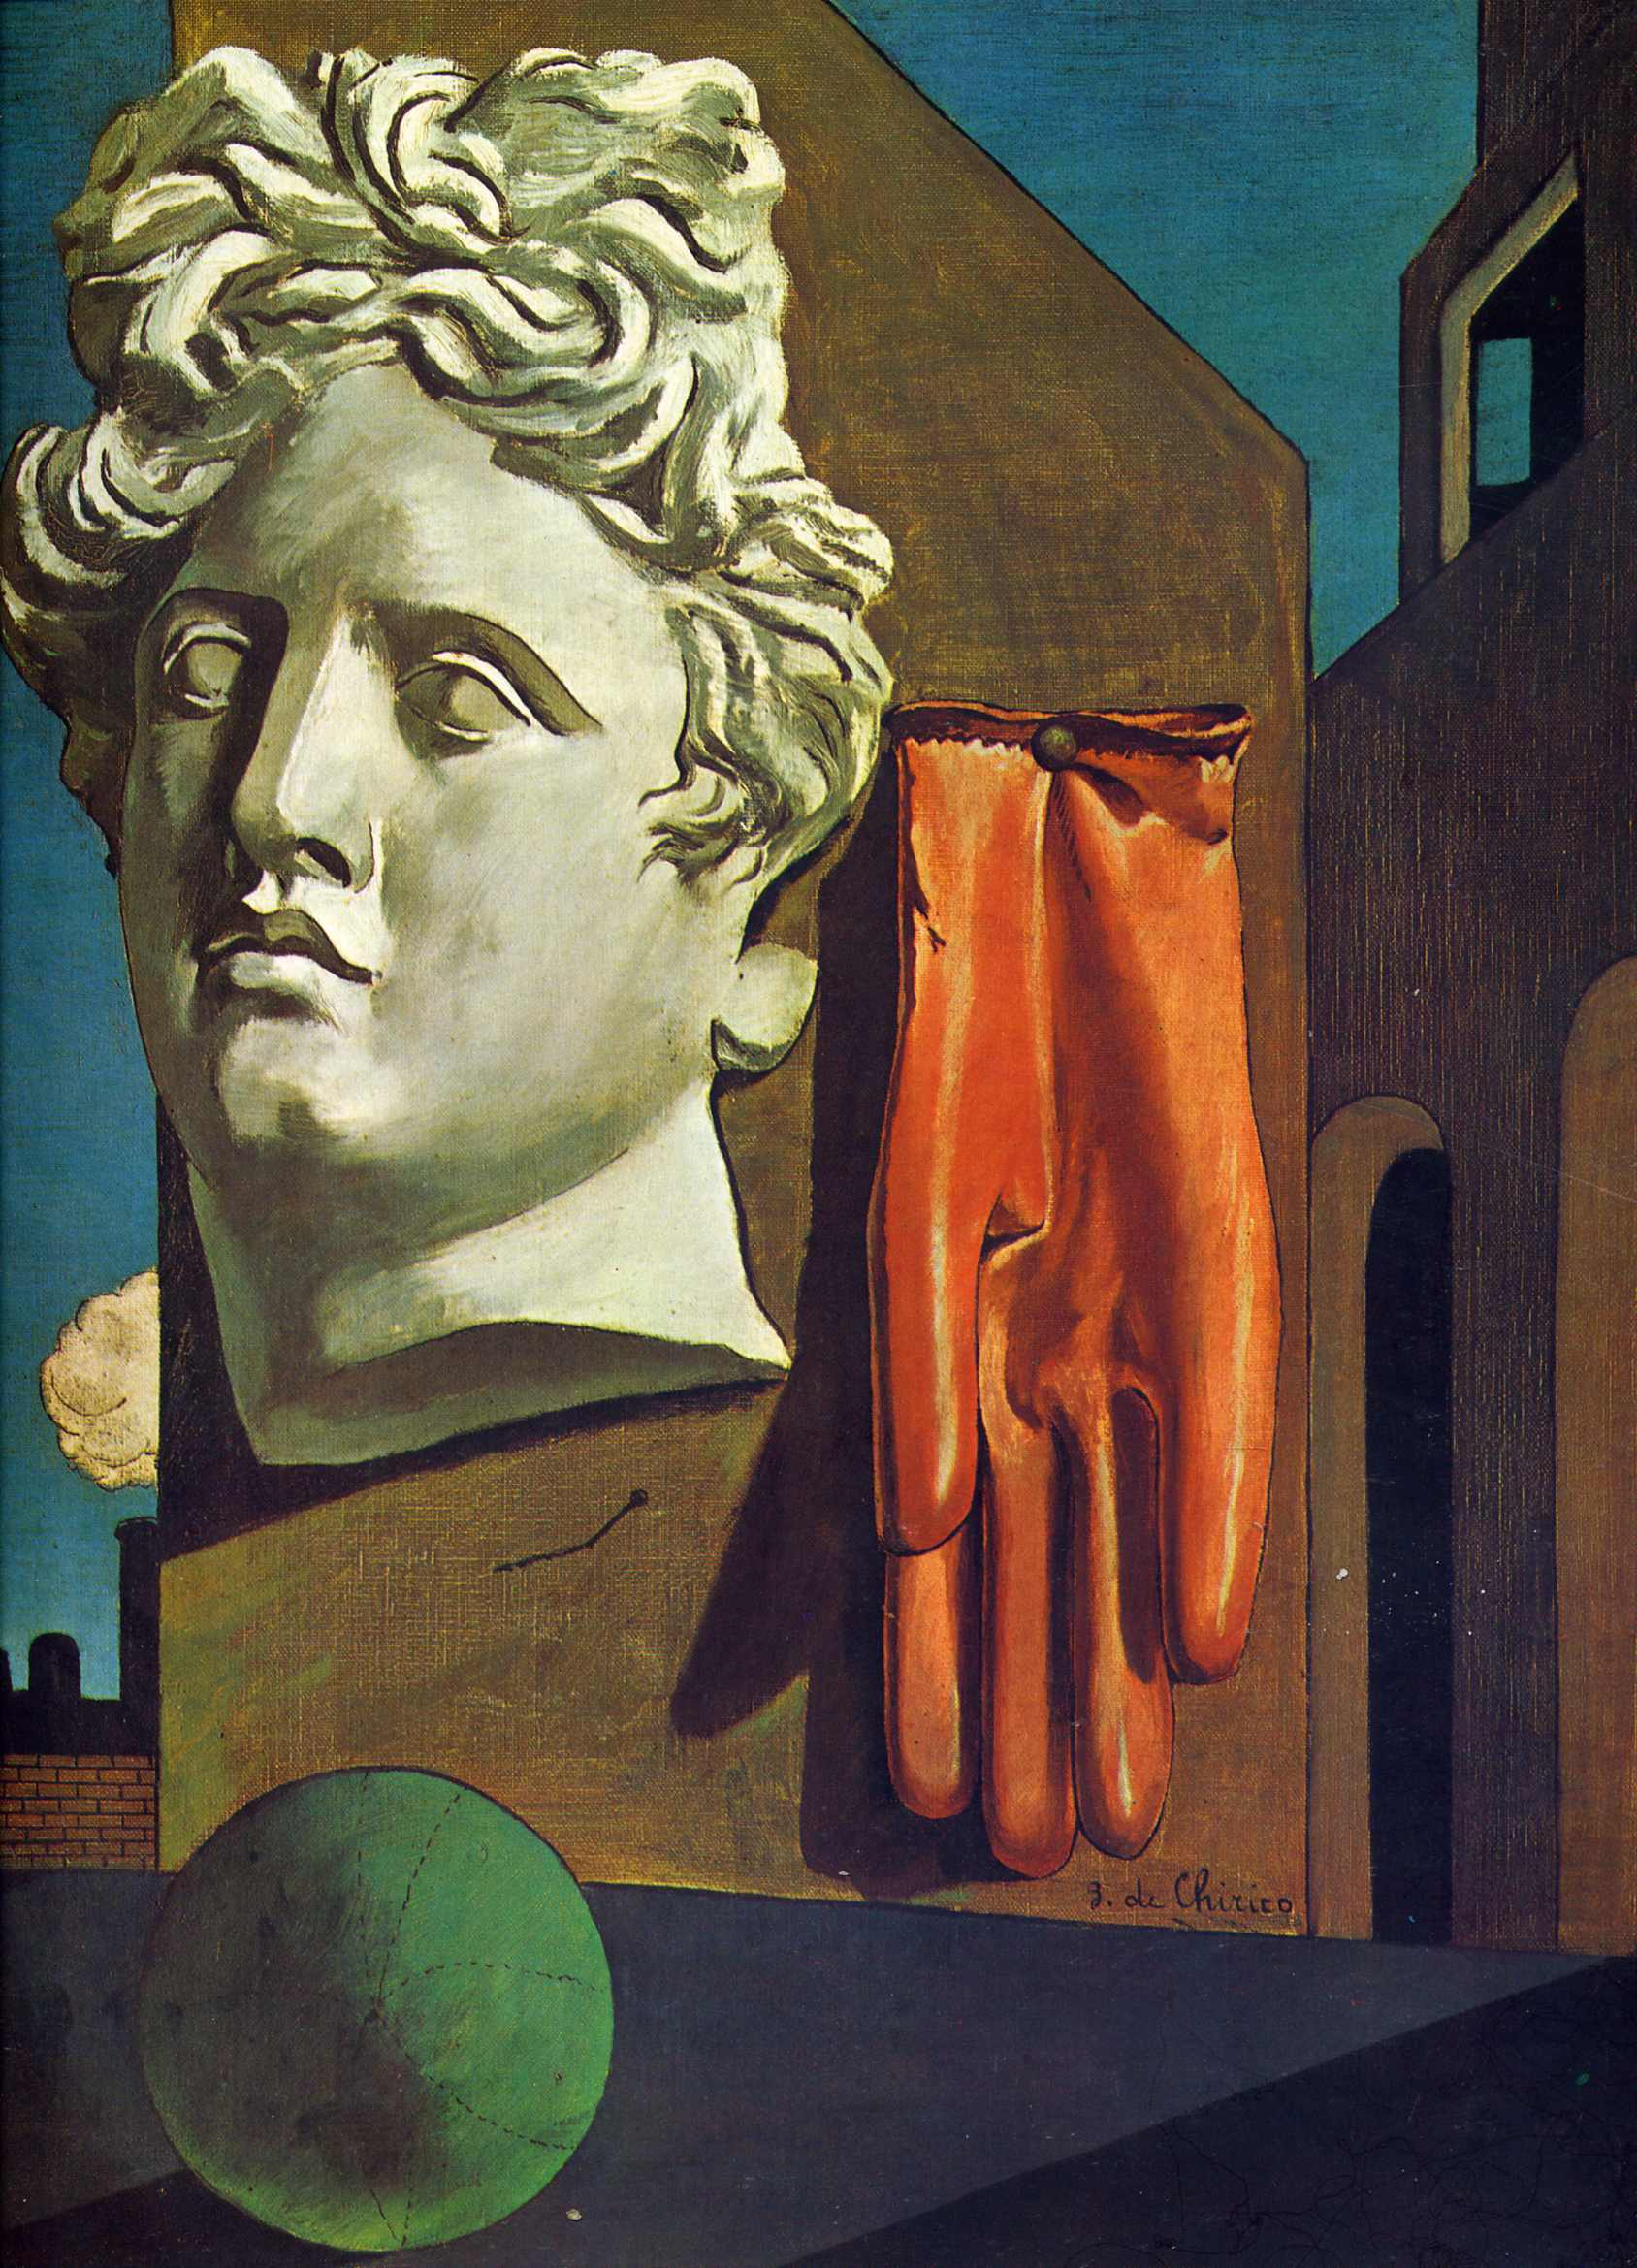 Giorgio de Chirico - Song of love, 1914